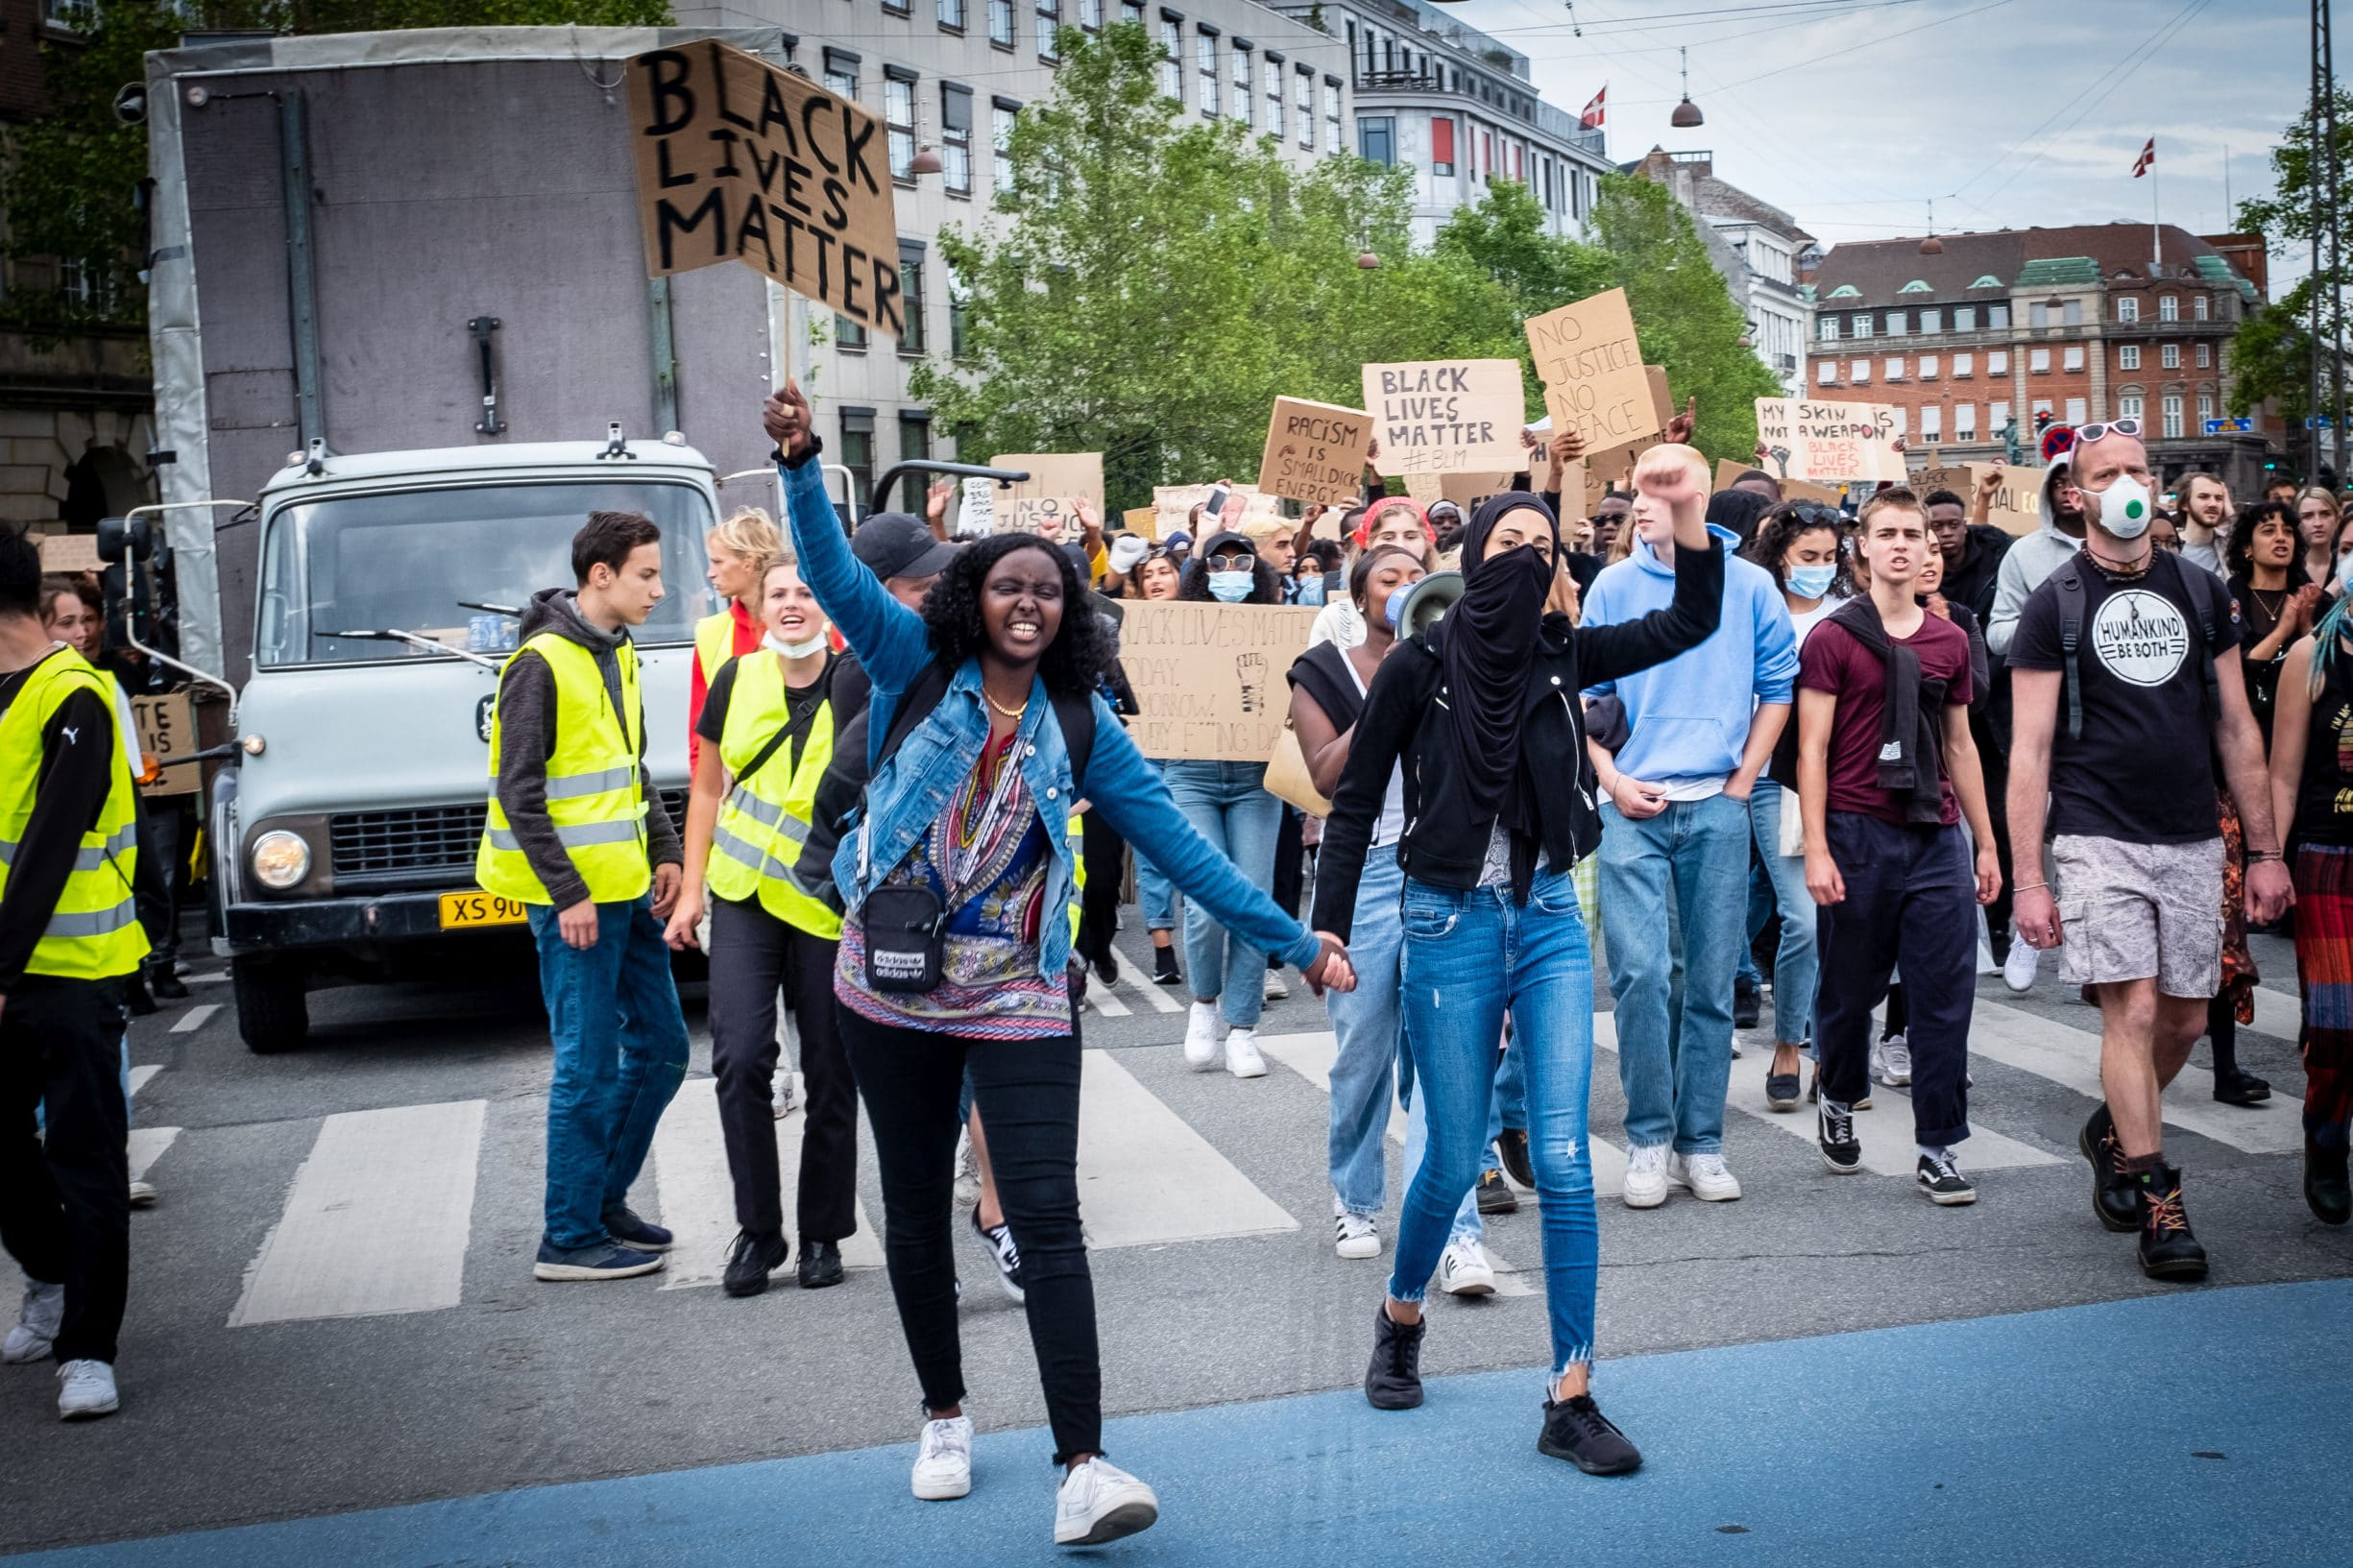 From Black Lives Matter demo in Copenhagen. 20.000 to 30.000 people protest in Copenhagen aganist racism and police brutality, June 7th 2020. Photo: Klaus Berdiin Jensen. (CC BY-NC-SA 2.0).